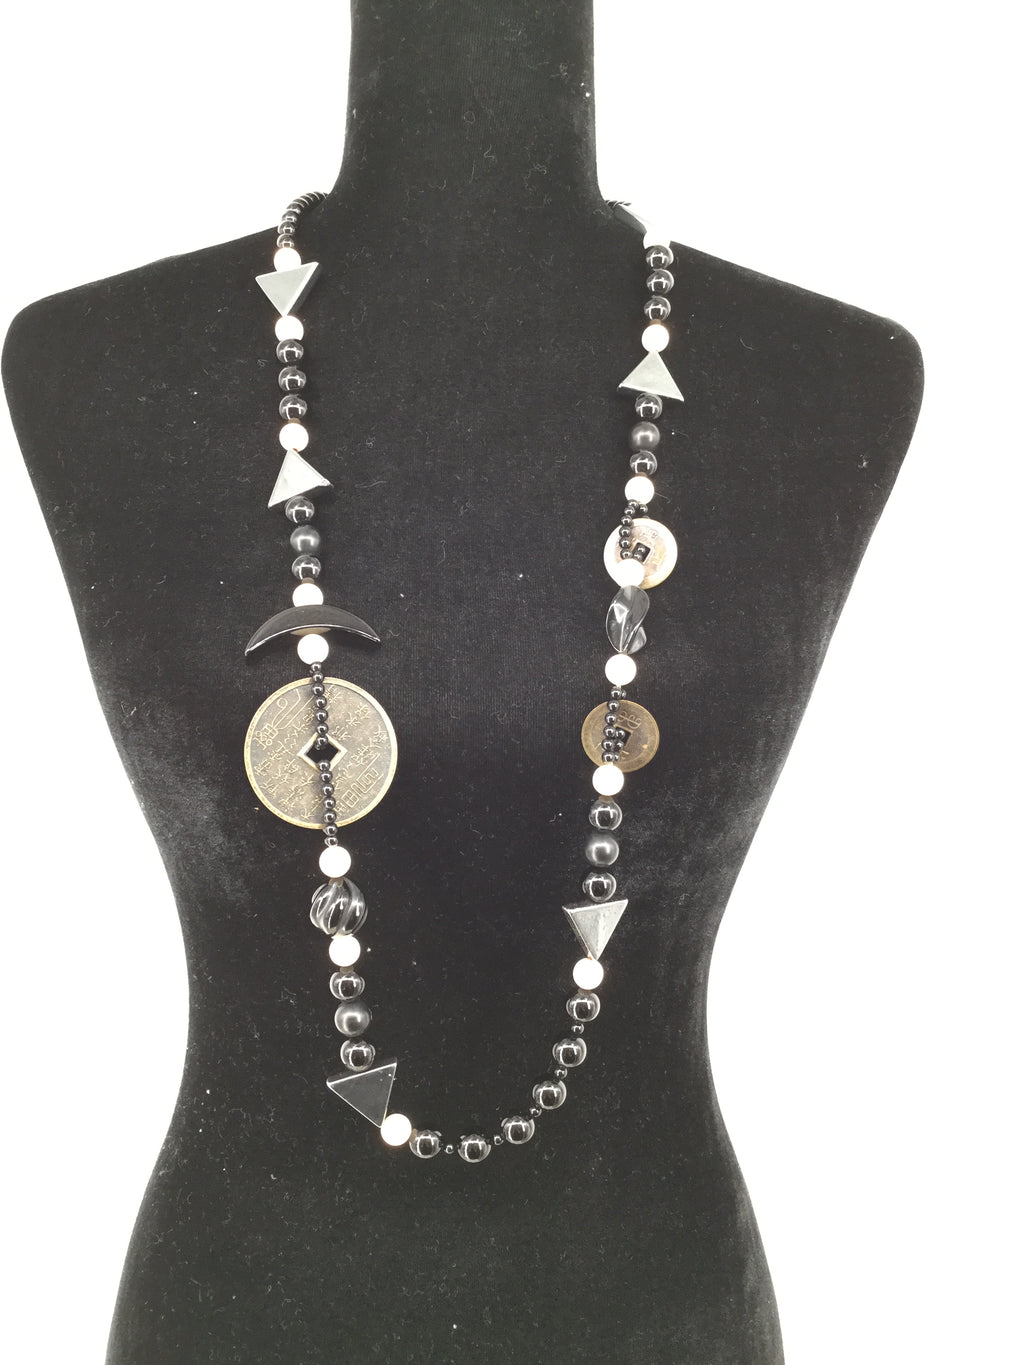 NEW! Onyx, Ivory, and Hematite Long BlackNecklace